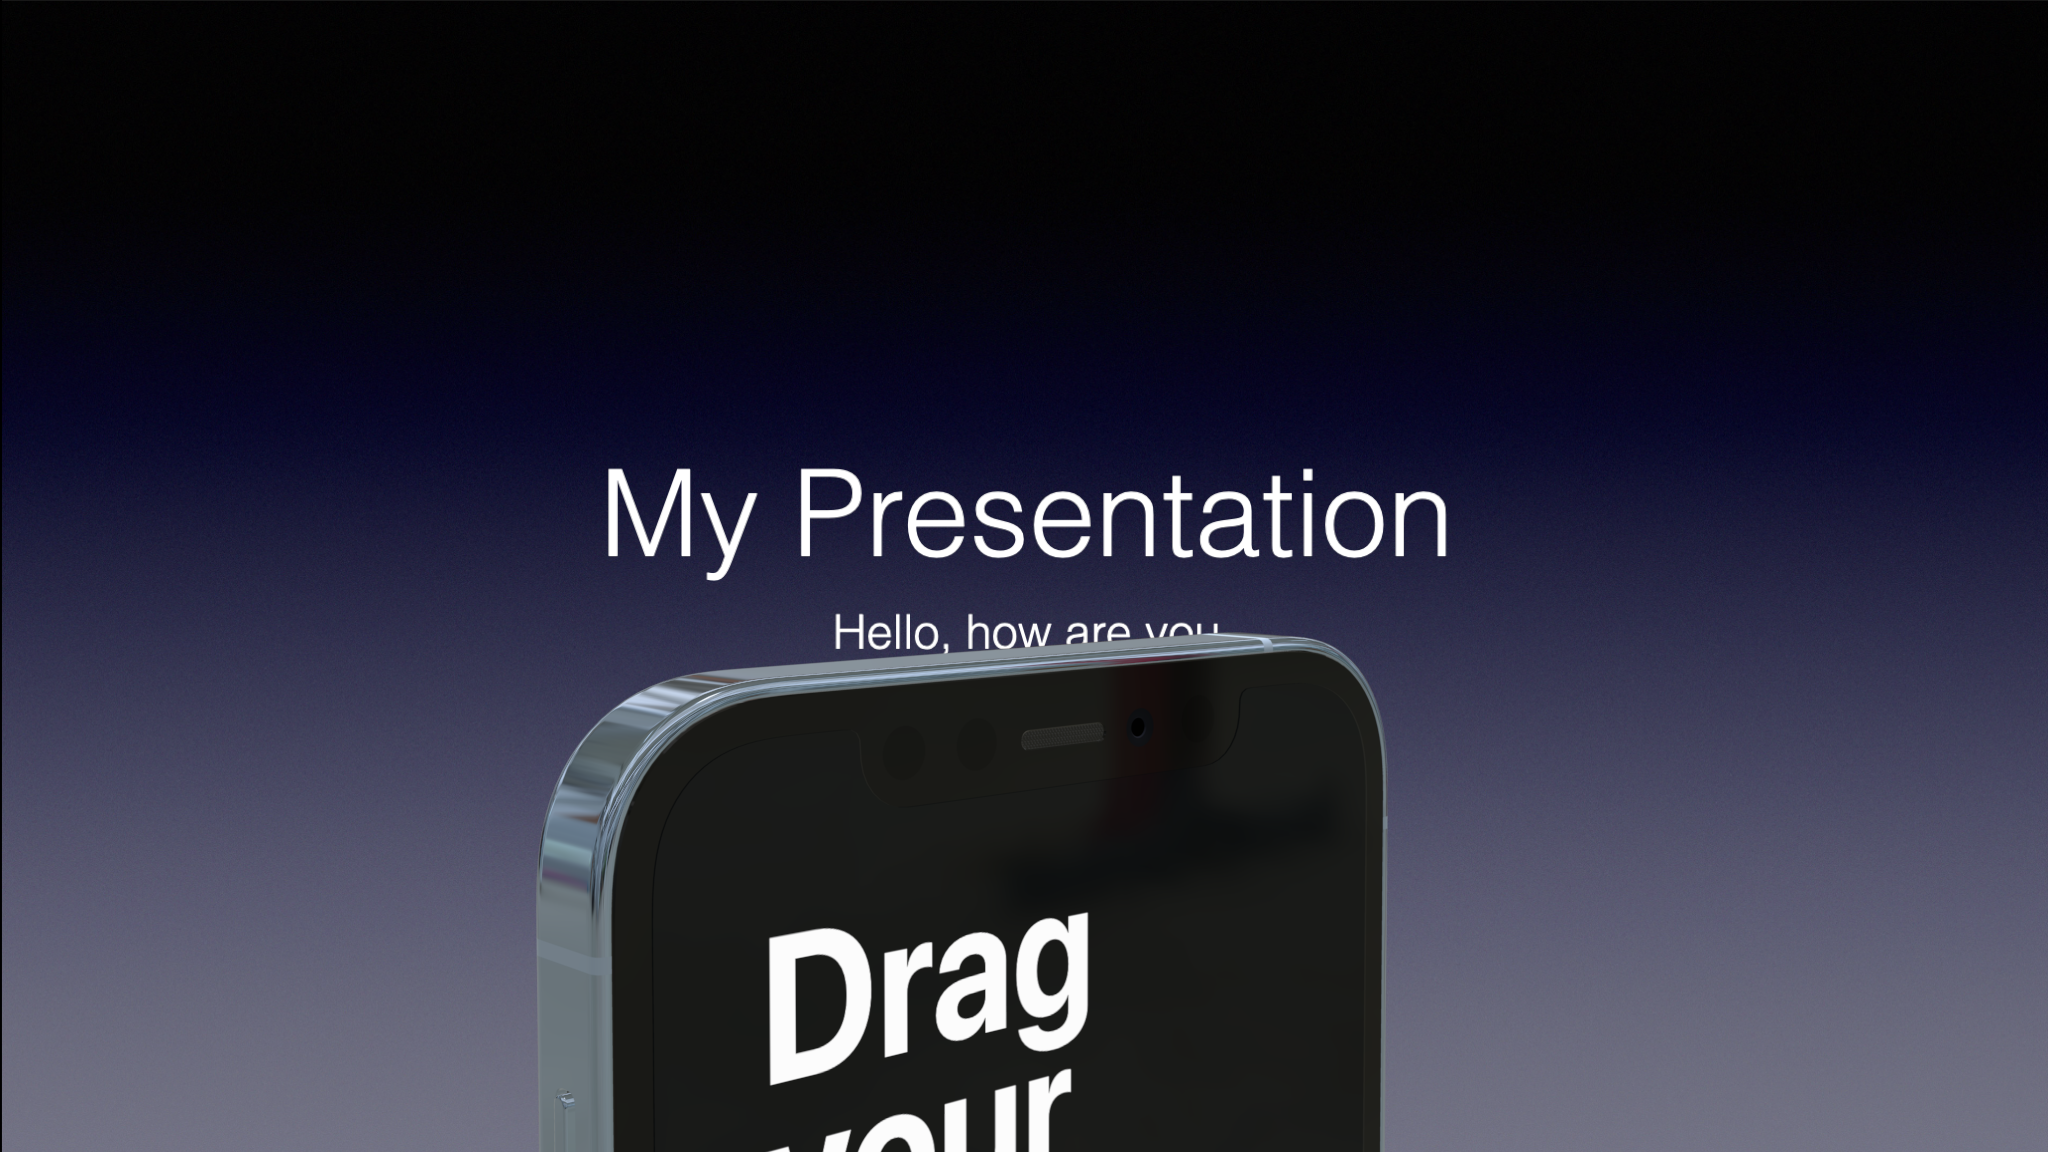 iPhone 12 Pro mockup in perspective in Keynote or Powerpoint with transparent background